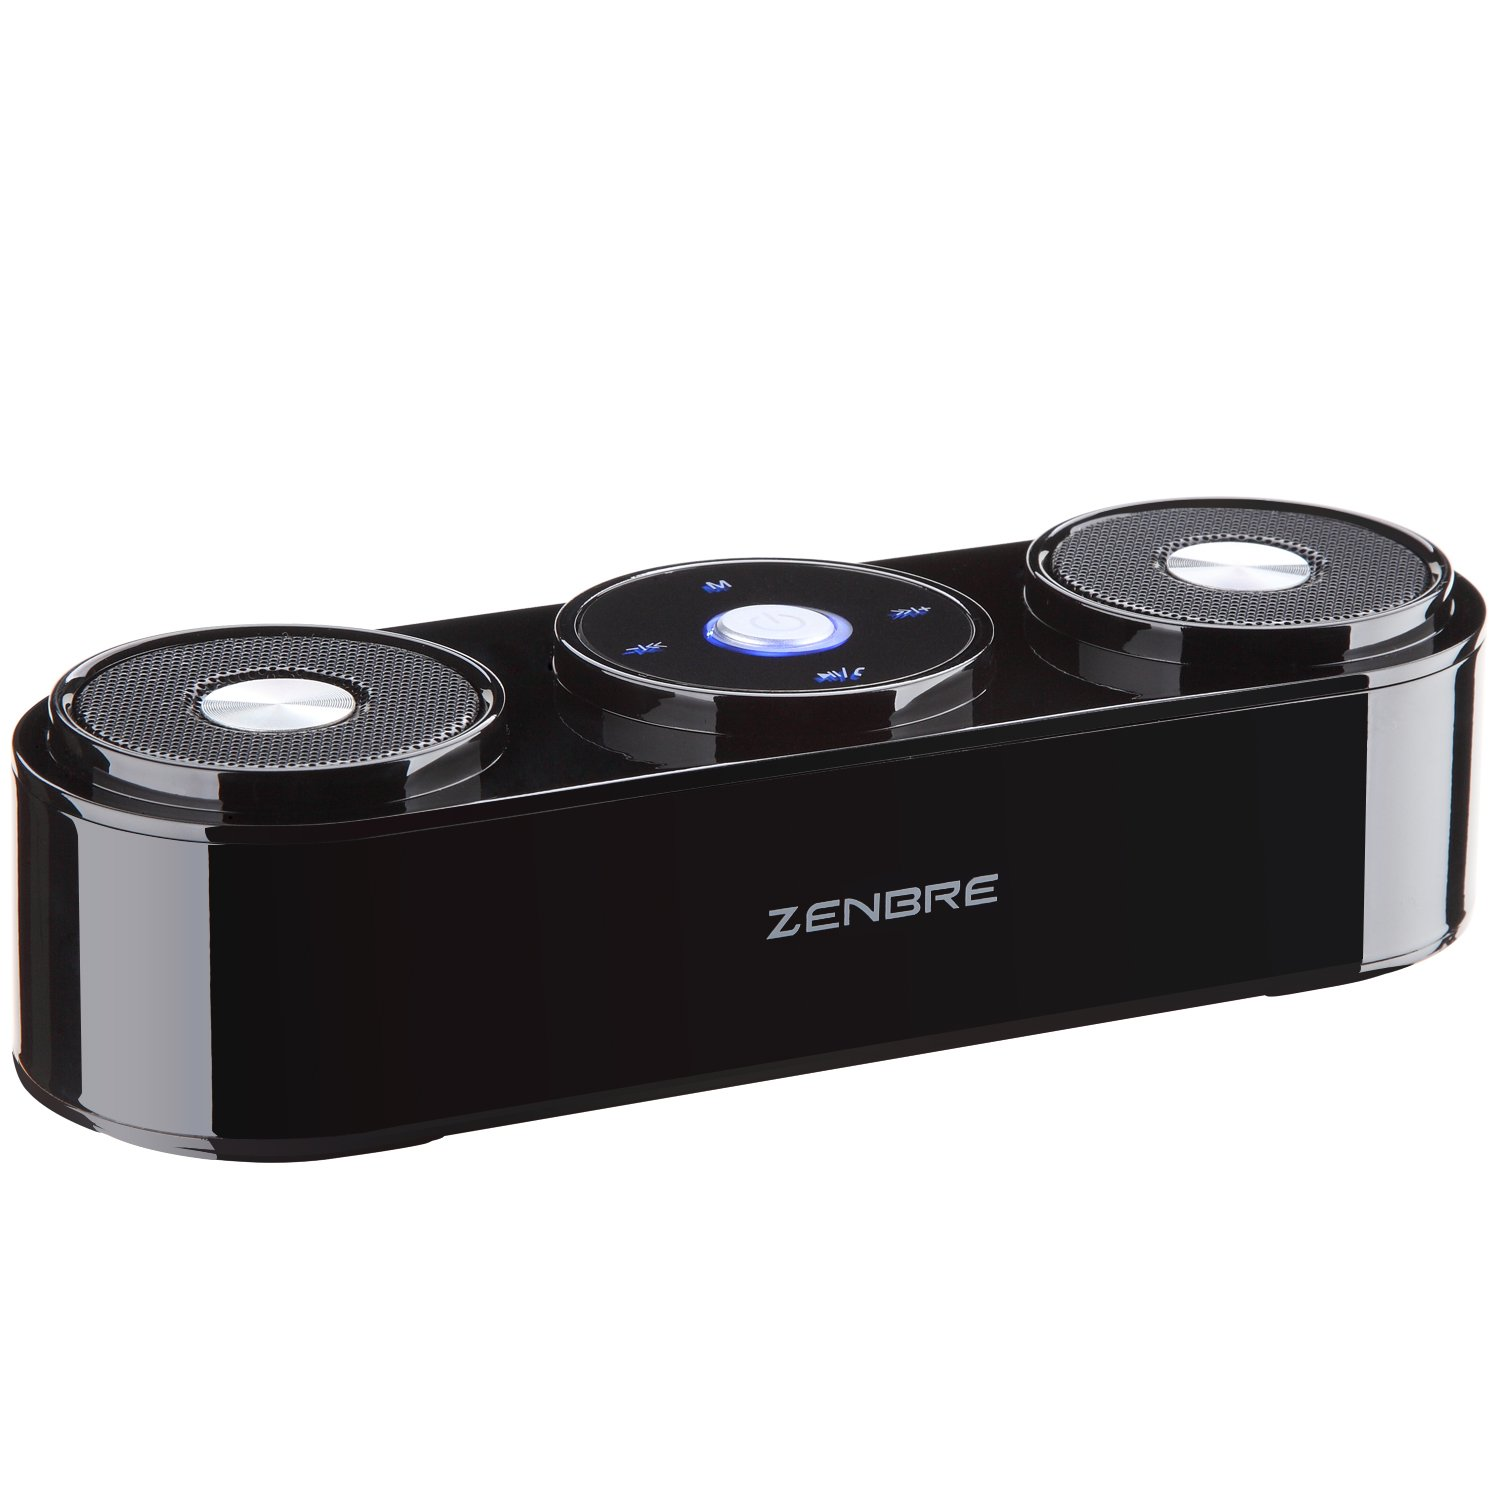 Bluetooth Speakers, ZENBRE Z3 10W Wireless Computer Speakers with 20h Playtime, Portable Speaker with Dual-Driver Enhanced Bass Resonator (Black) by ZENBRE (Image #2)